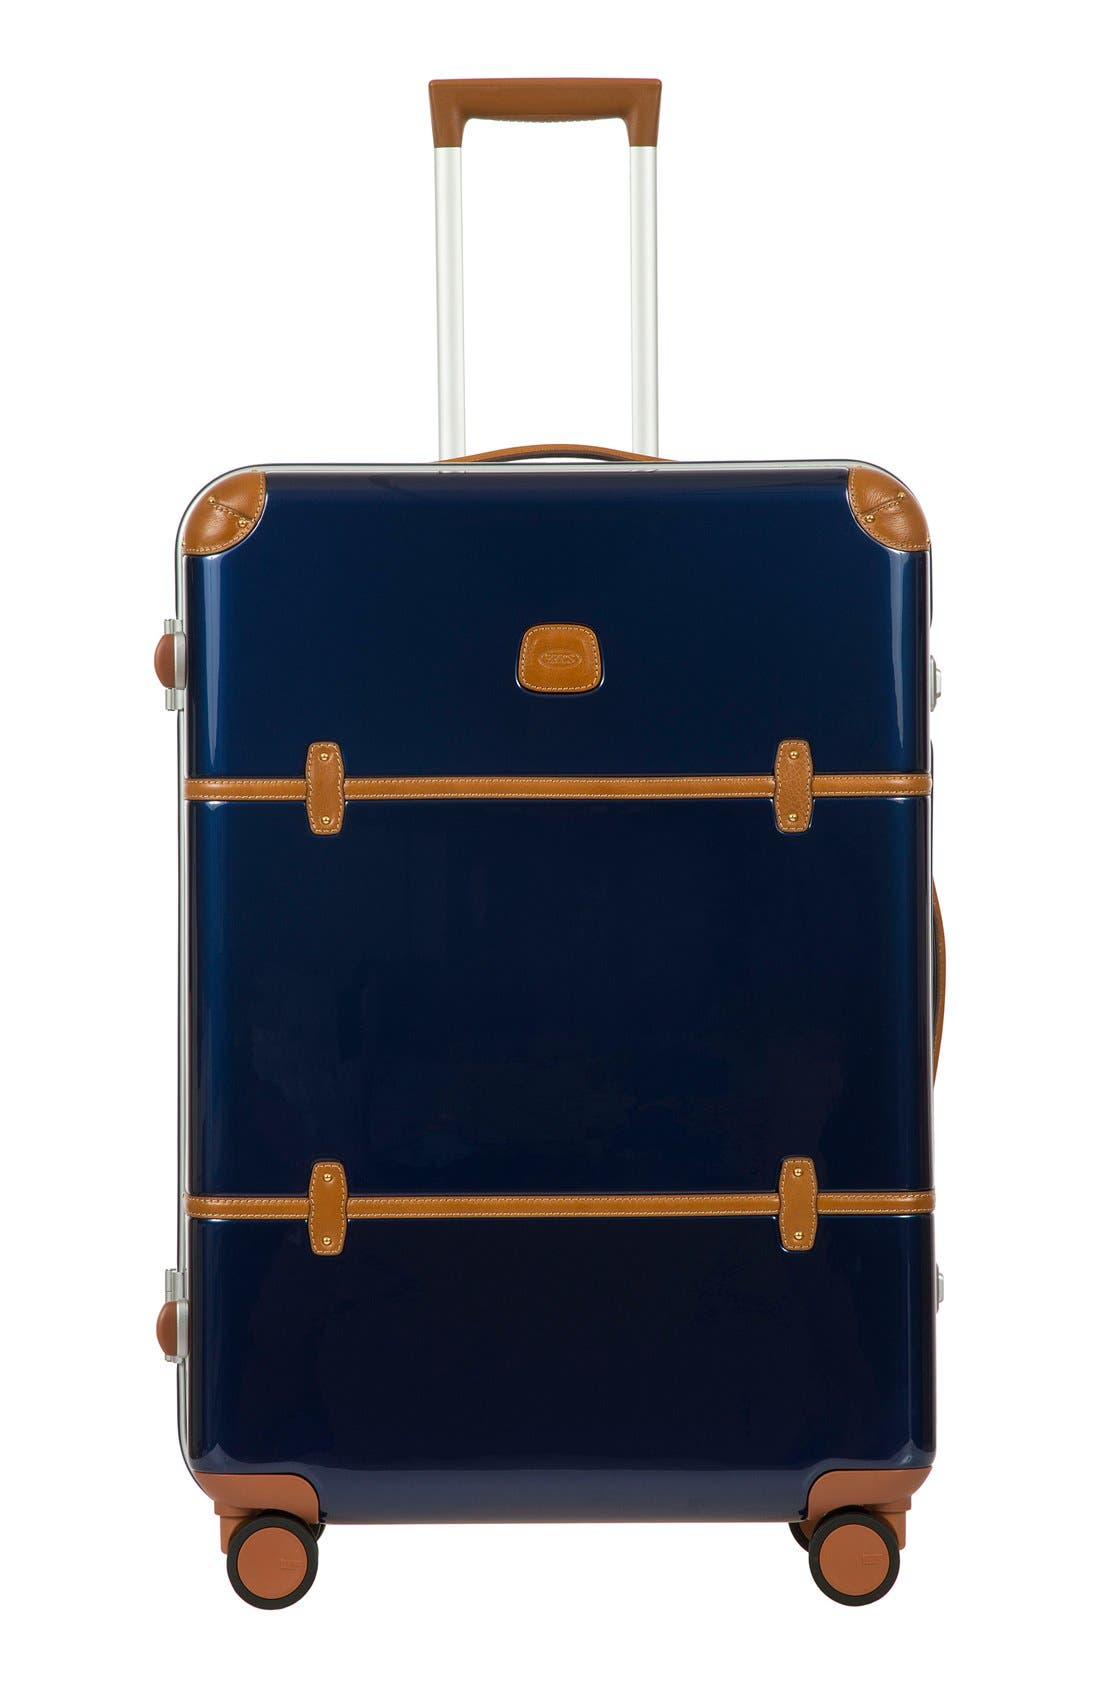 BRICS Bellagio Metallo 2.0 30 Inch Rolling Suitcase